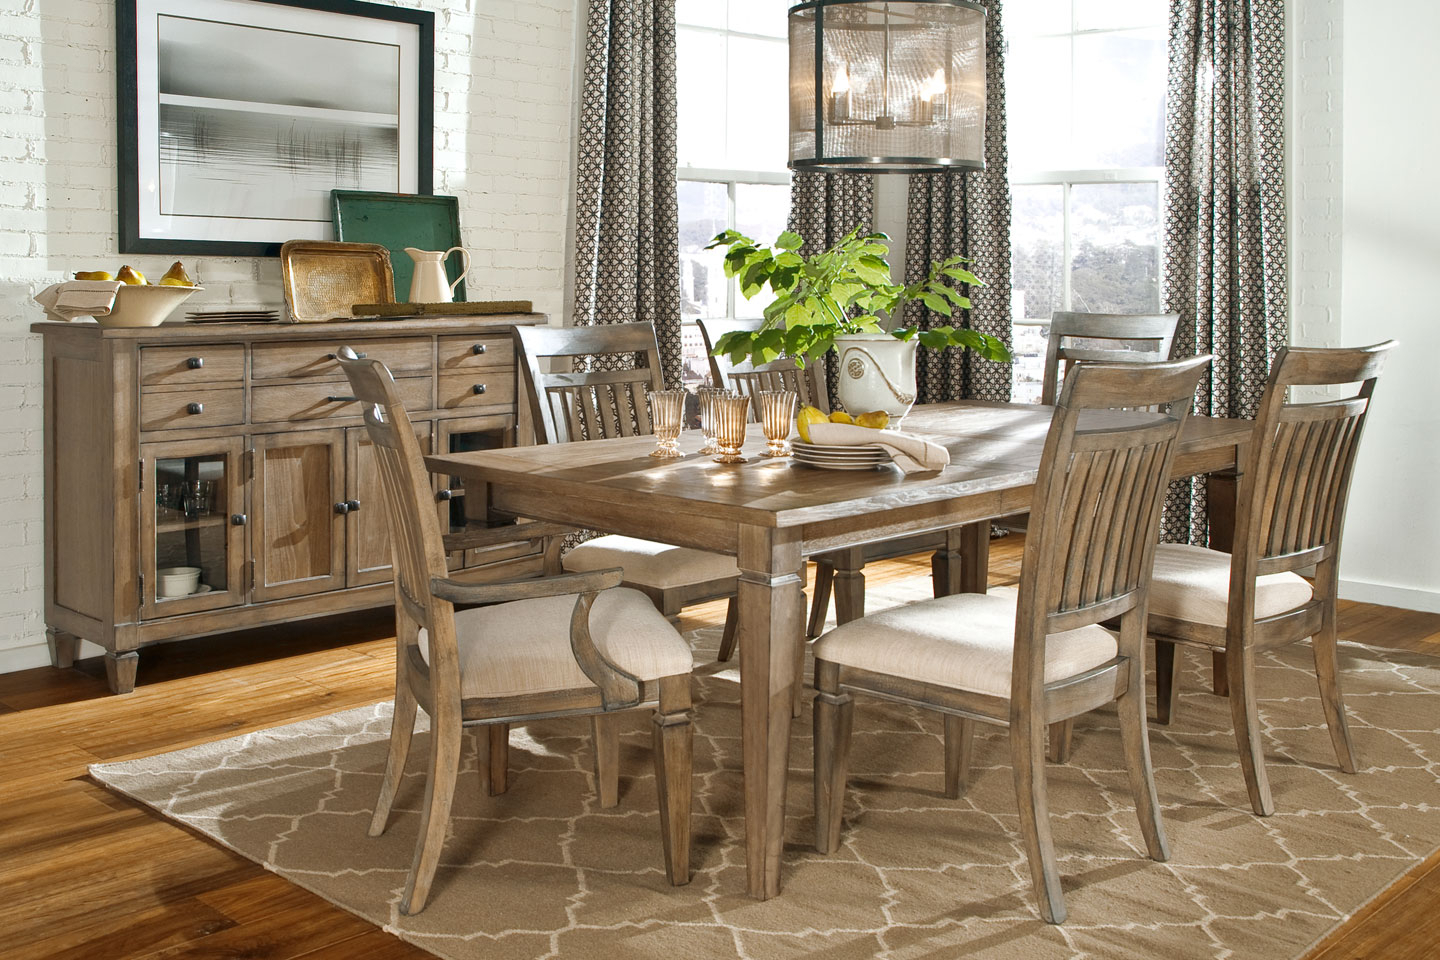 2019 Beautiful Rustic Kitchen Tables To Inspire You — Office Pdx For Large Rustic Look Dining Tables (View 18 of 25)